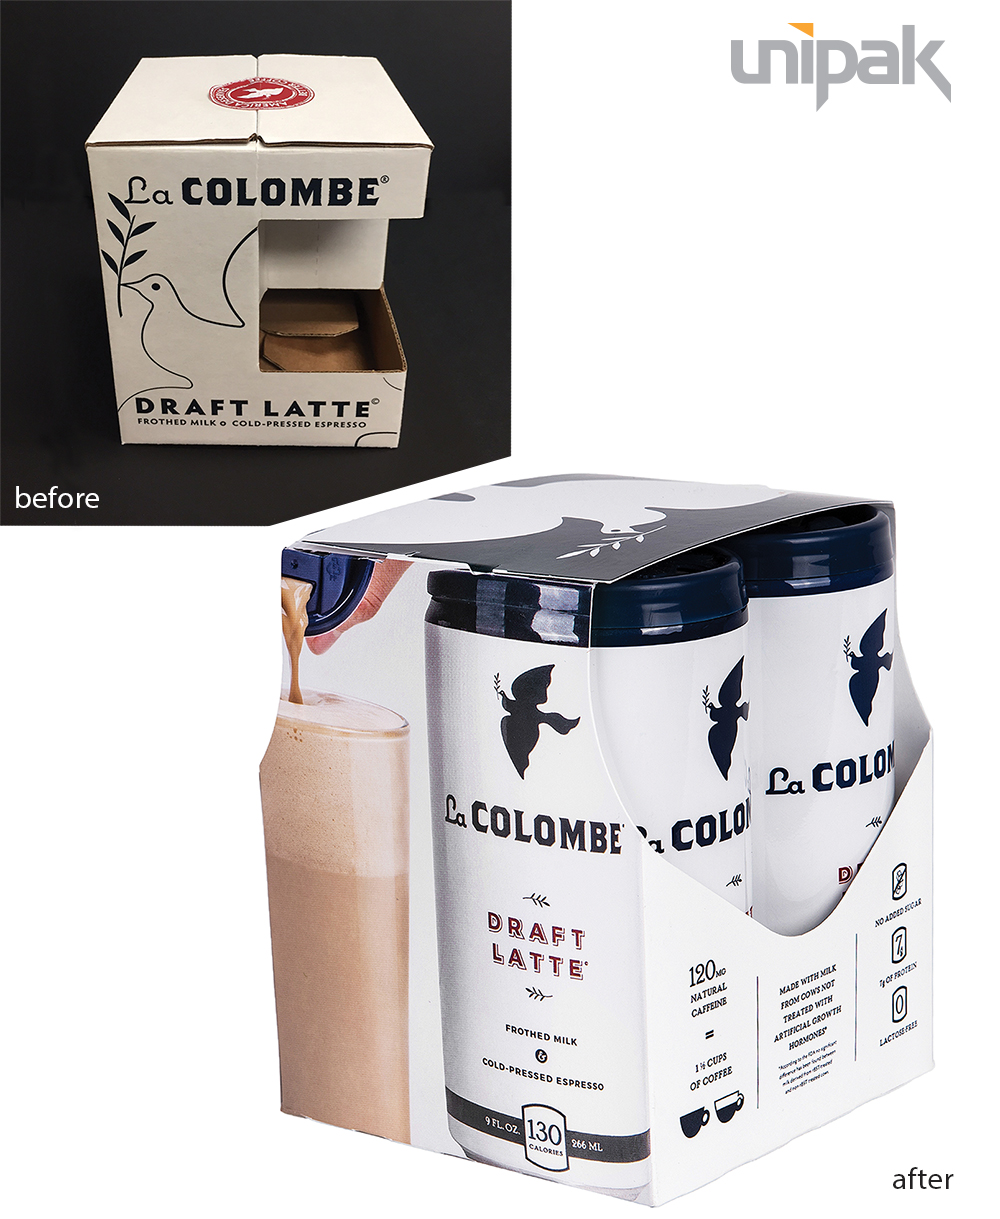 New La Colombe Packaging